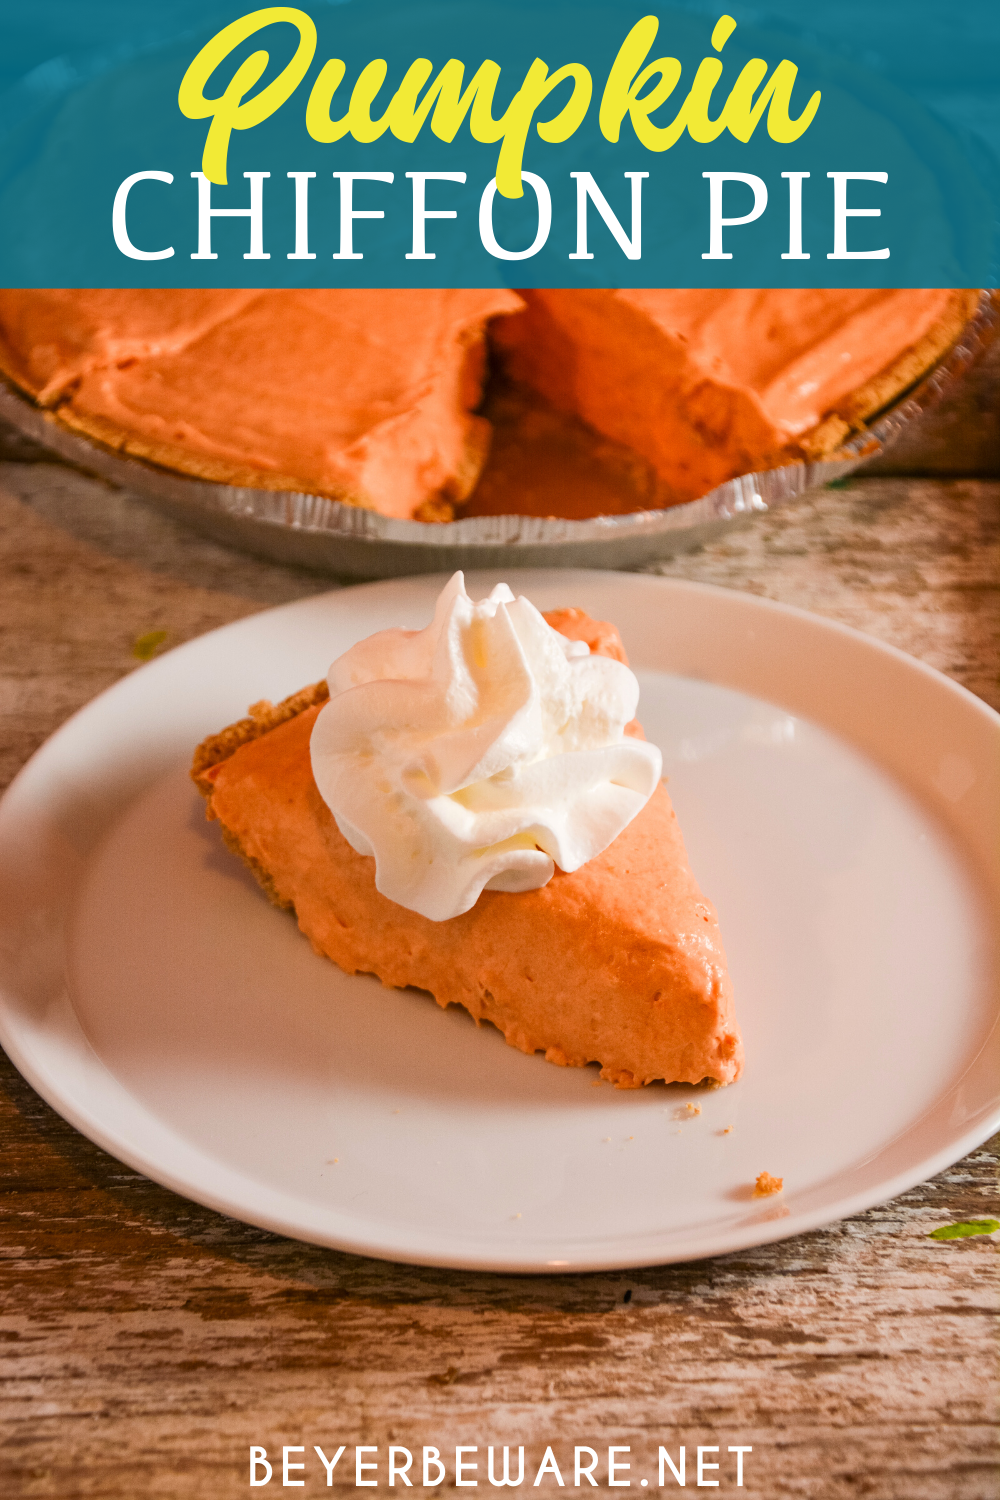 This Pumpkin Chiffon Pie recipe is the silky, creamy no-bake version of a traditional pumpkin pie, made with real pumpkin and pudding in a graham cracker crust.